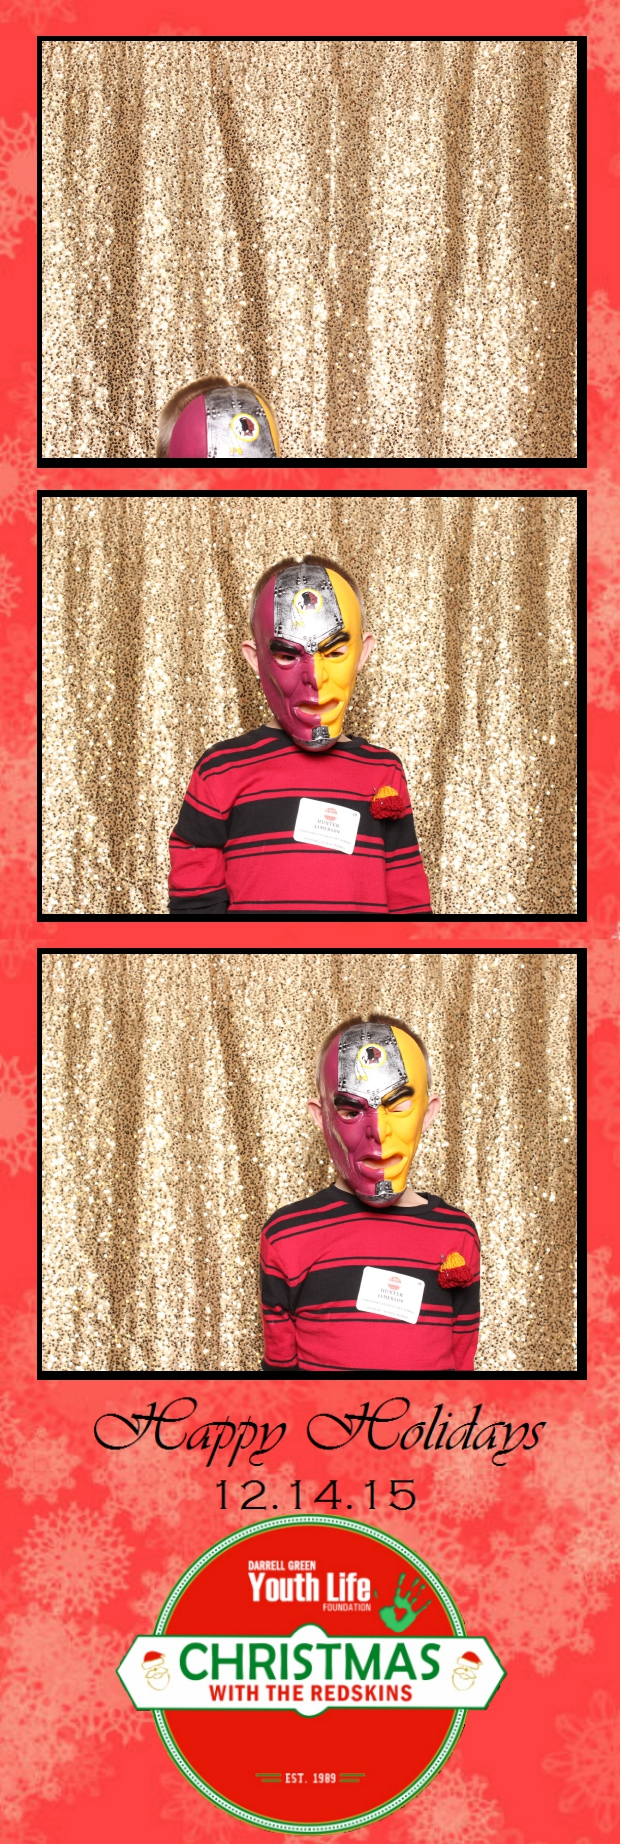 Guest House Events Photo Booth DGYLF Strips (4).jpg